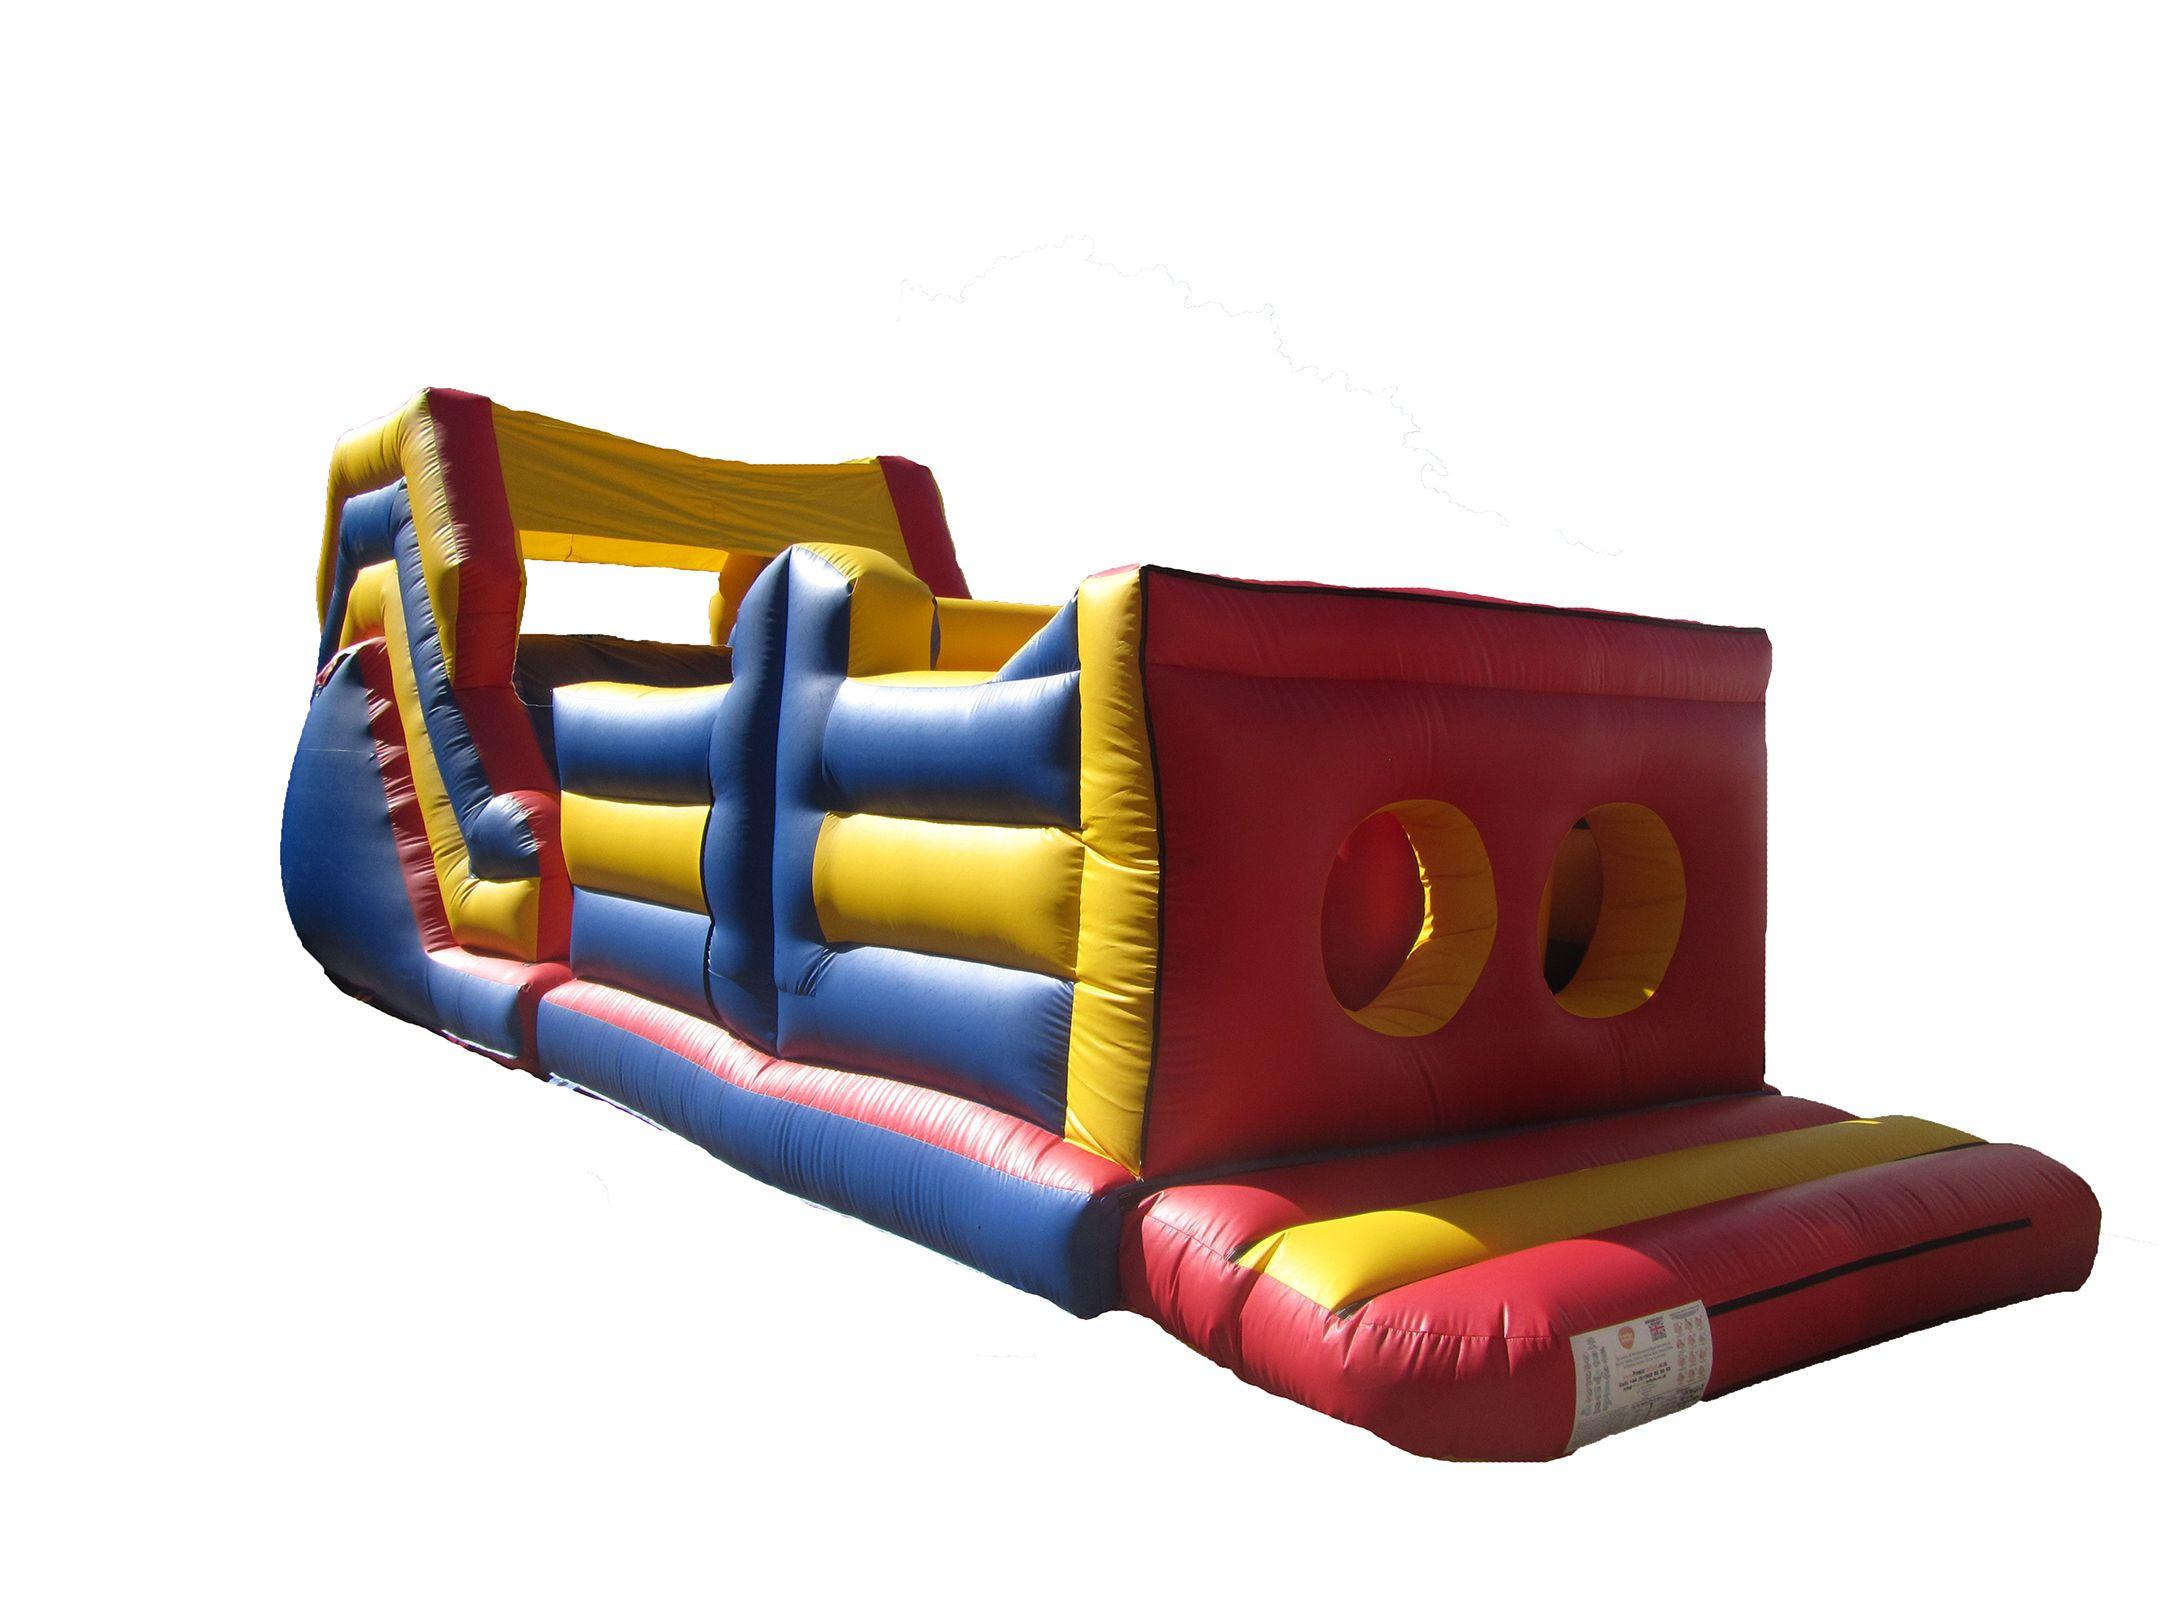 Commercial 2 Part Bouncy Obstacle Course